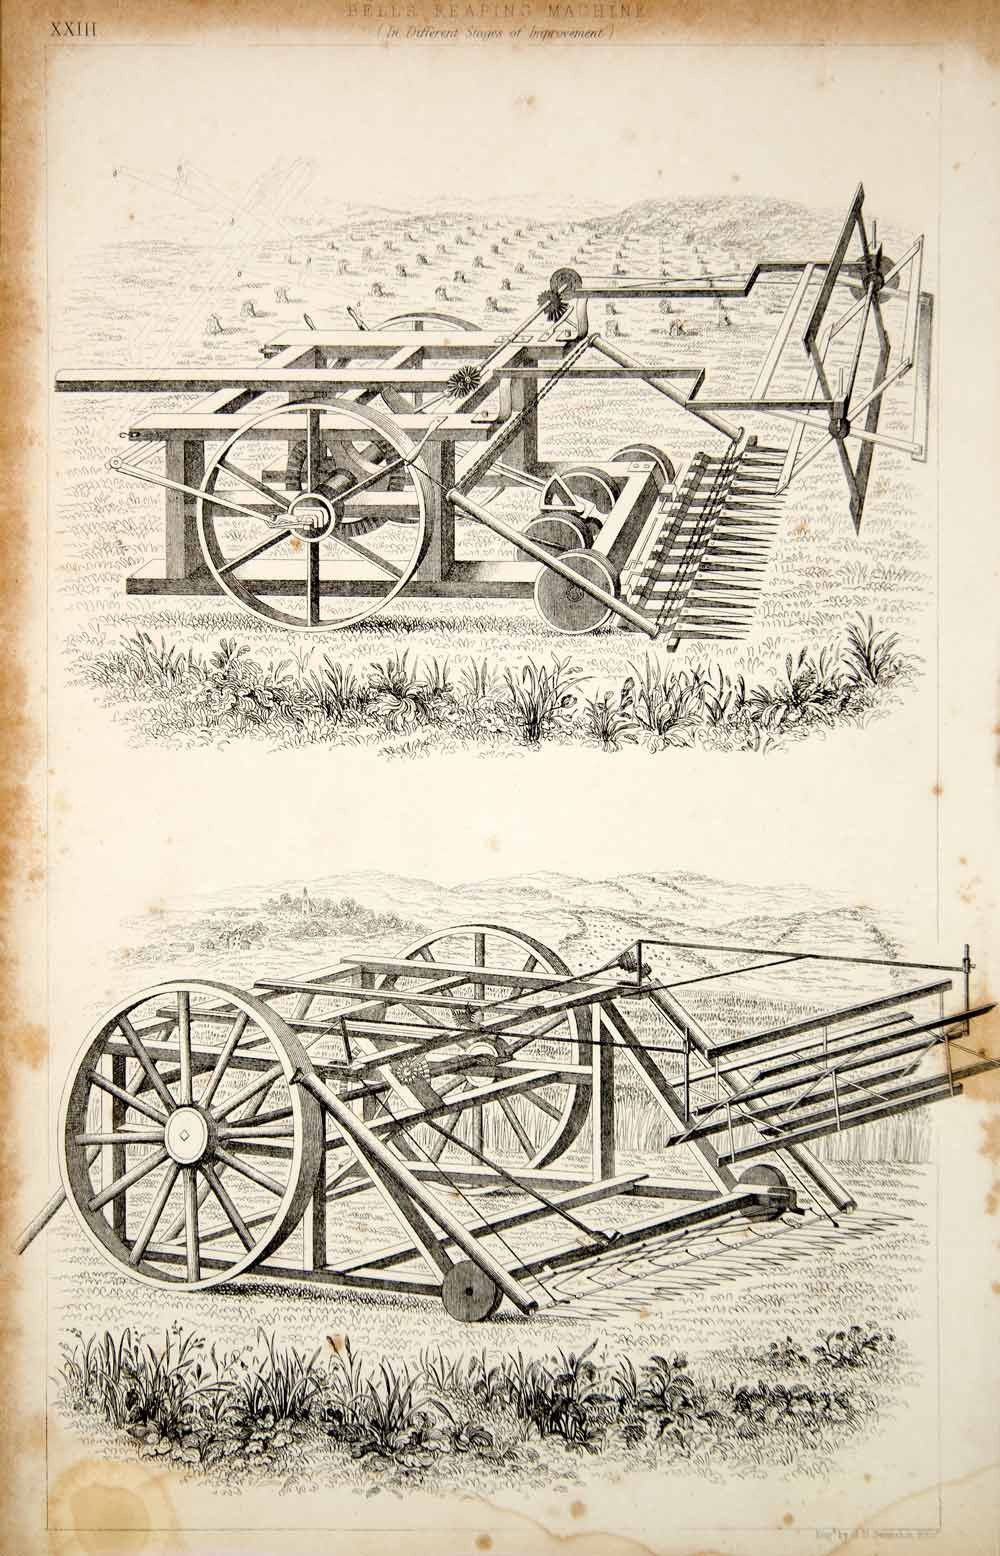 1852 Steel Engraving Antique Bell Reaping Machine Reaper Farming Agriculture FD1 - Period Paper